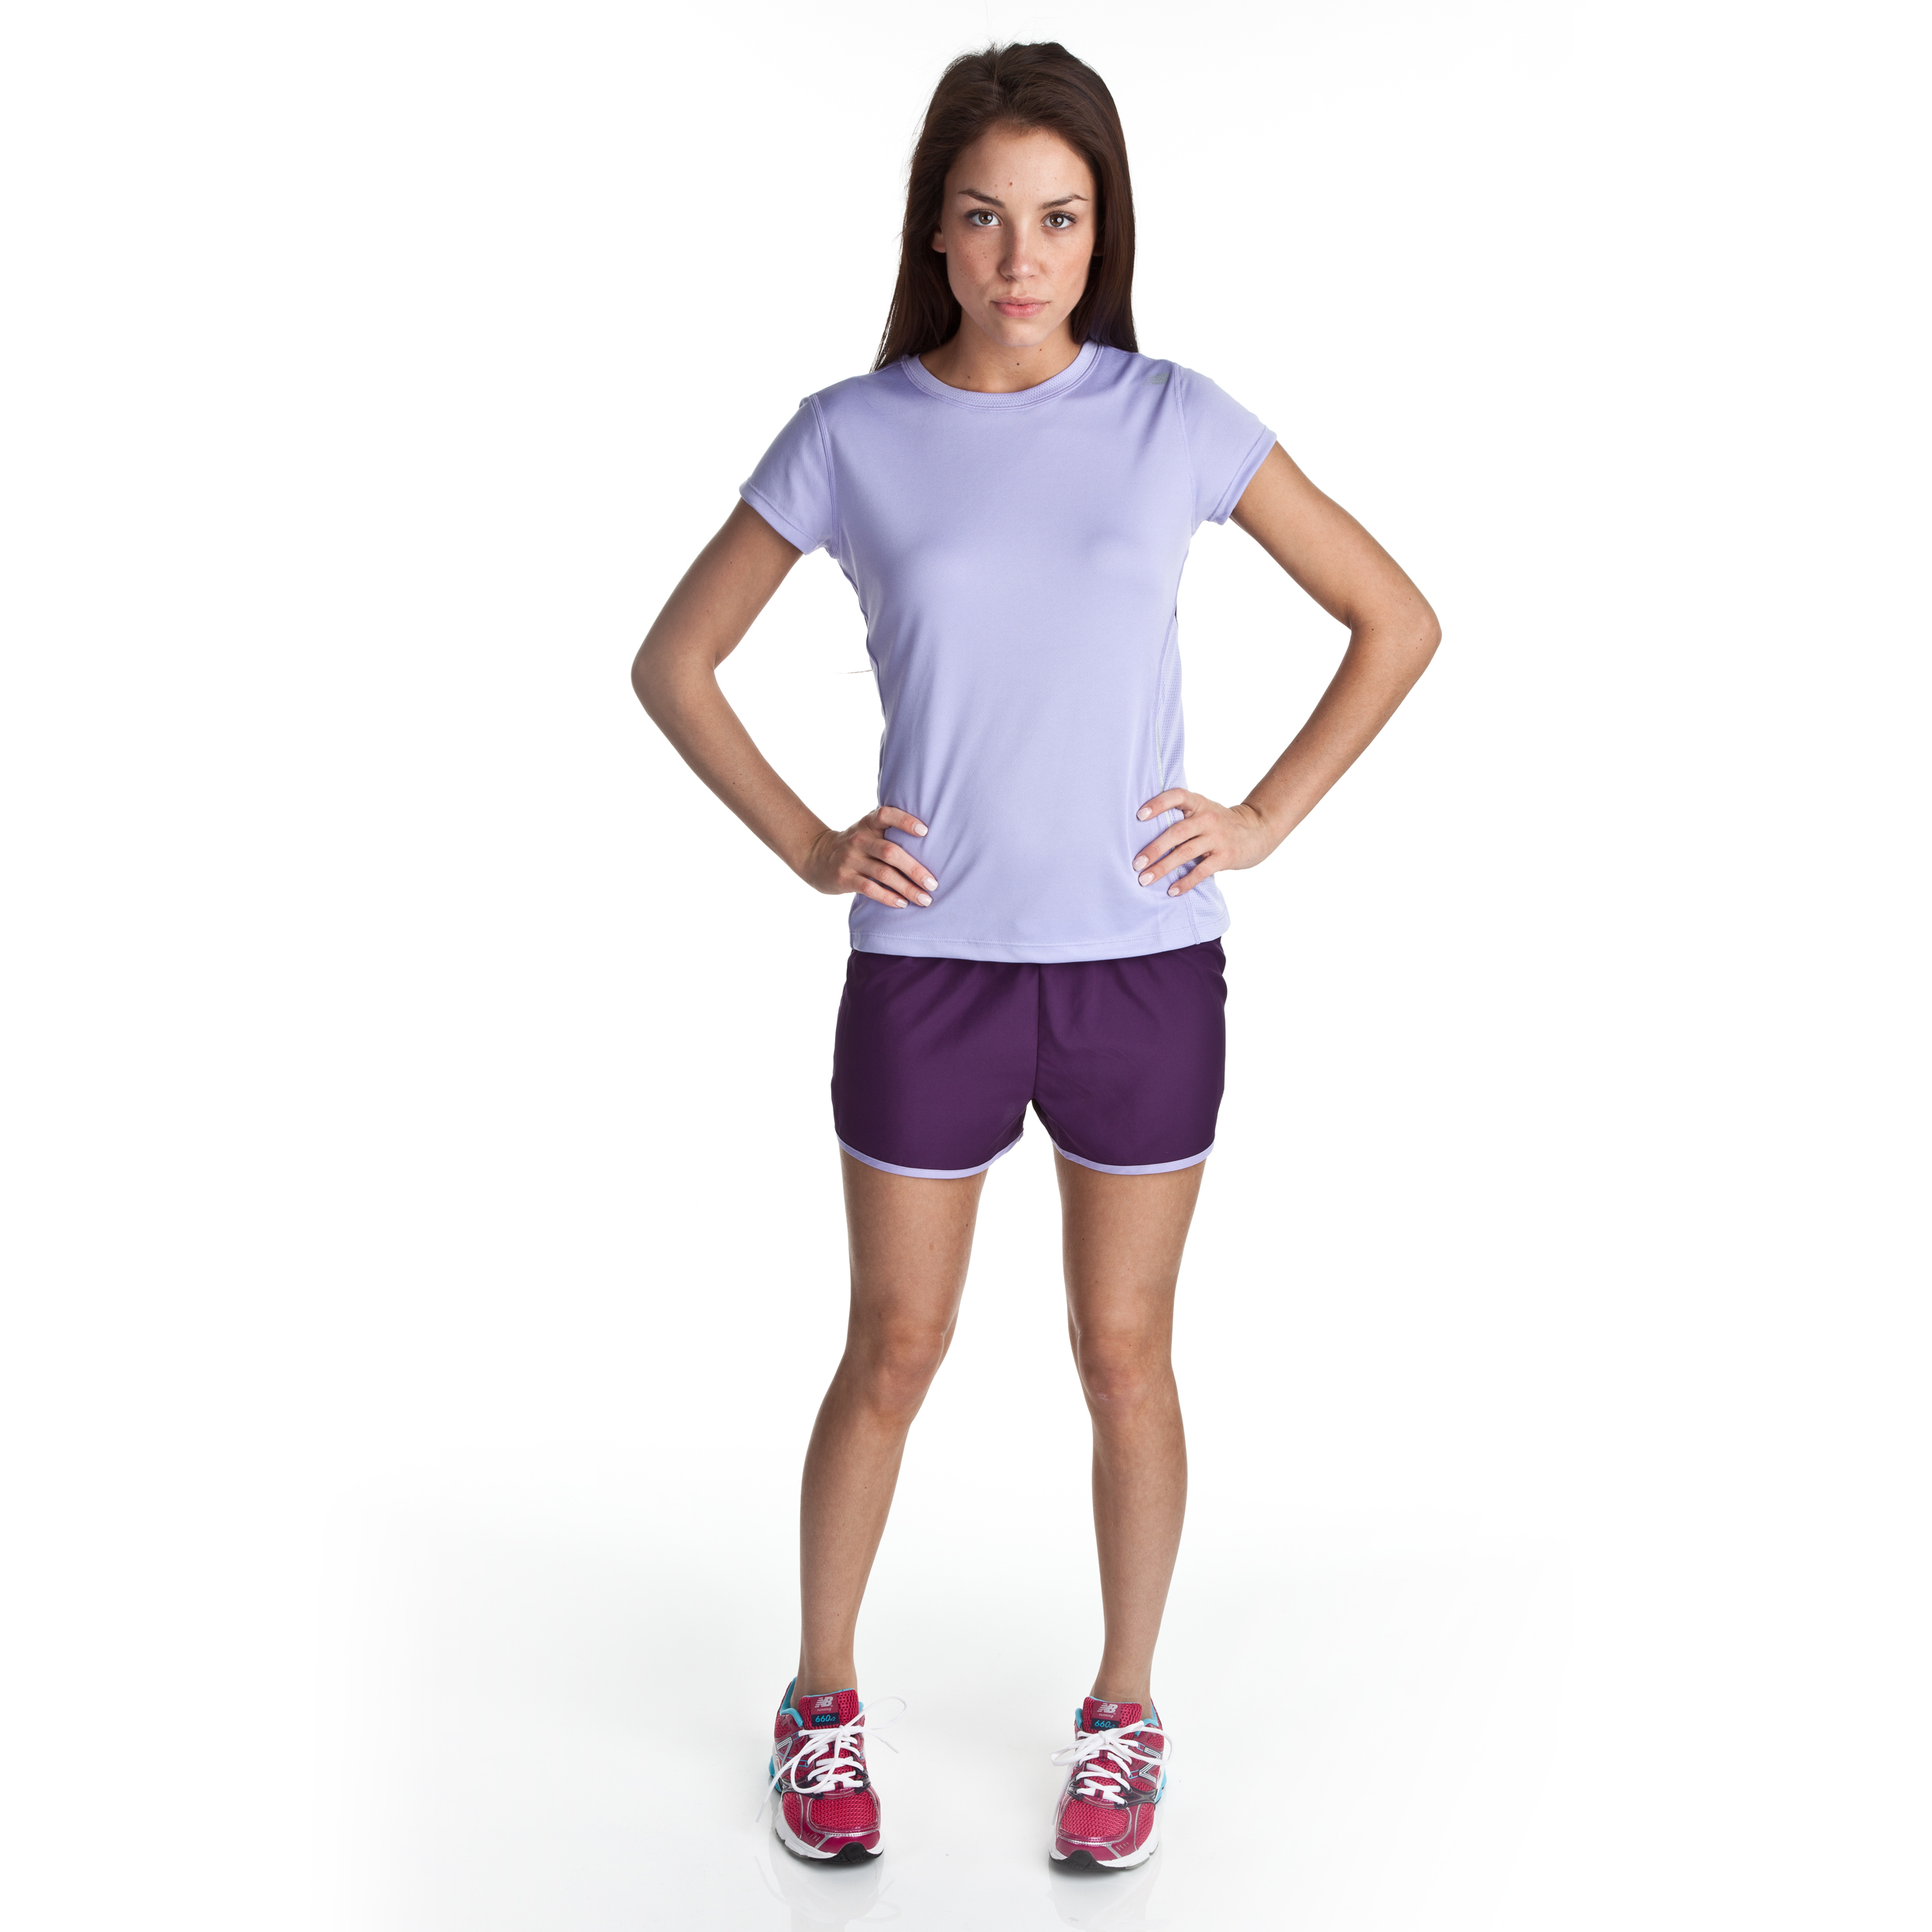 New Balance Short - Blackberry Cordial - Womens